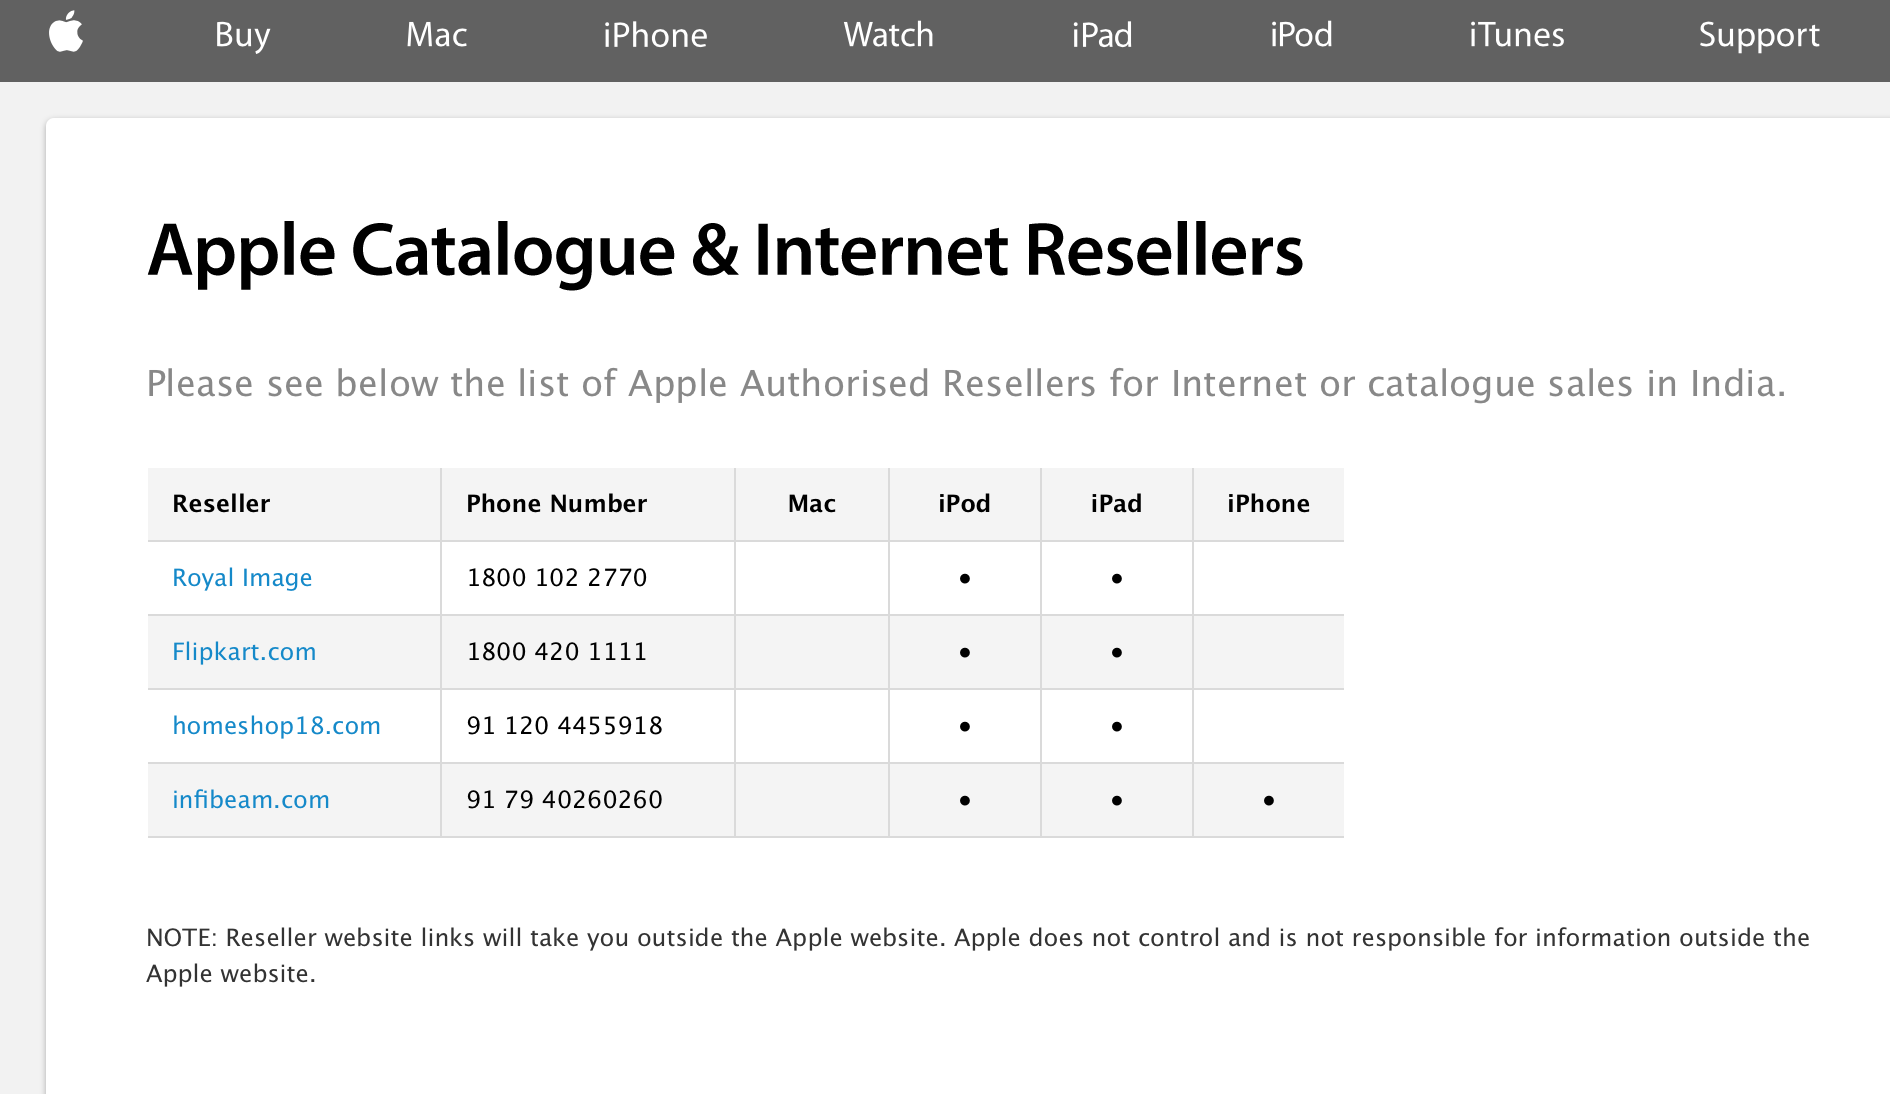 Apple's authorized resellers